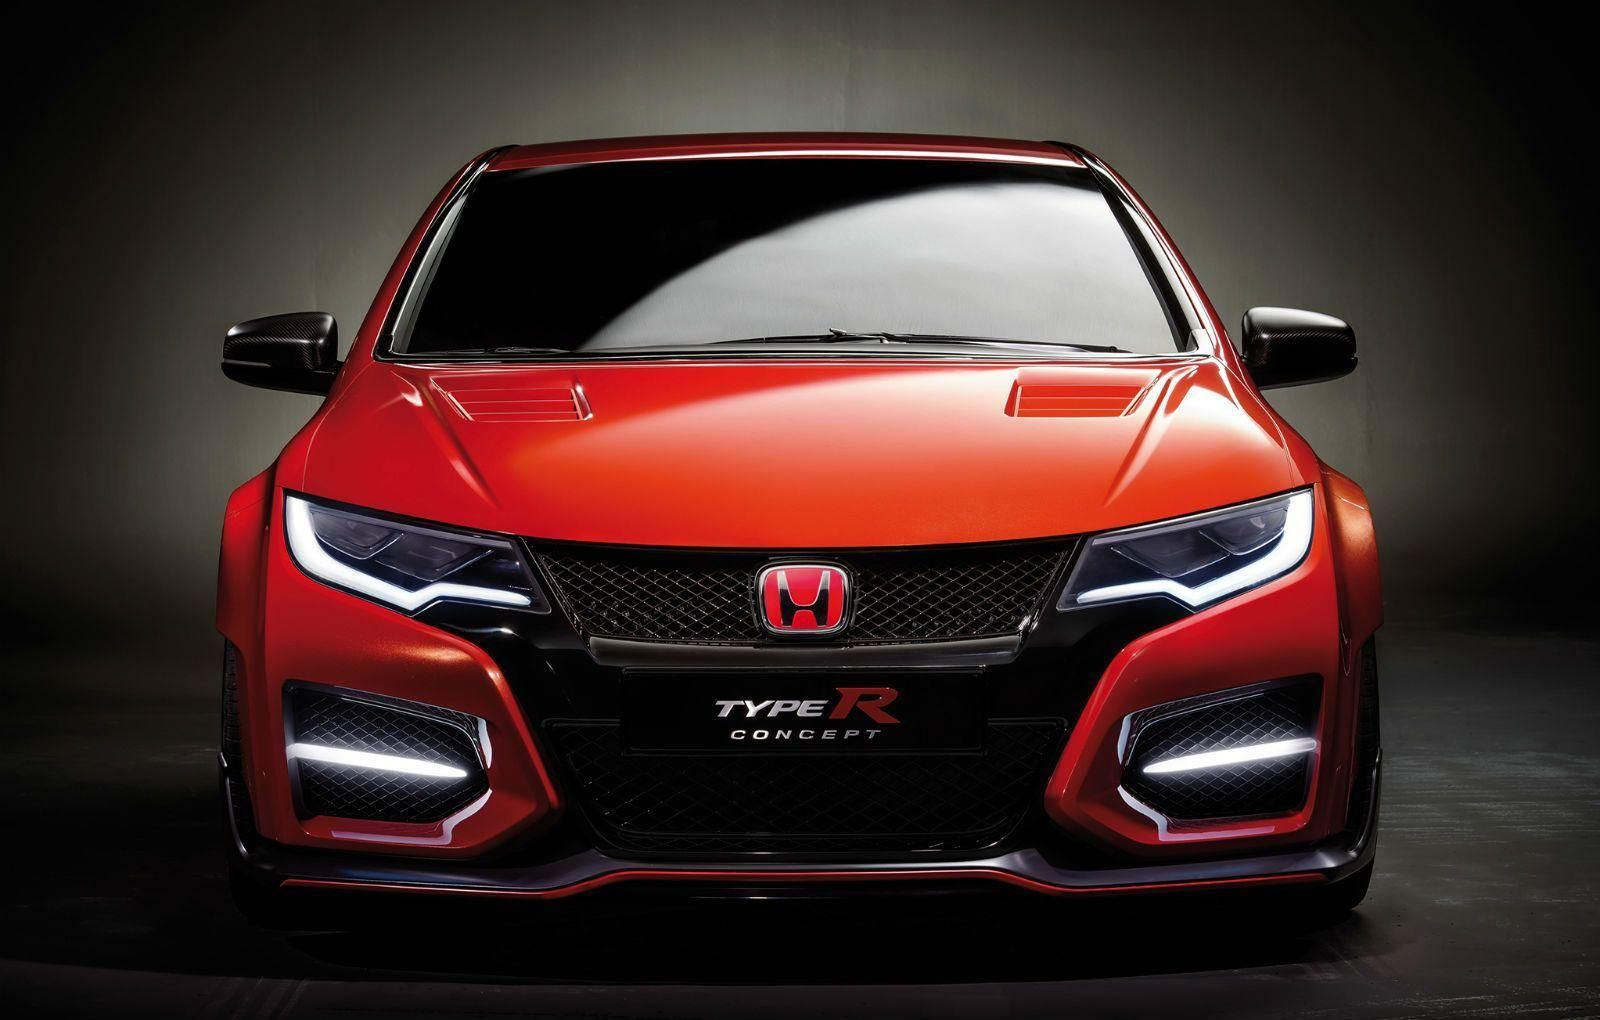 Download Honda City Hd Wallpapers Pictures Images And Photos